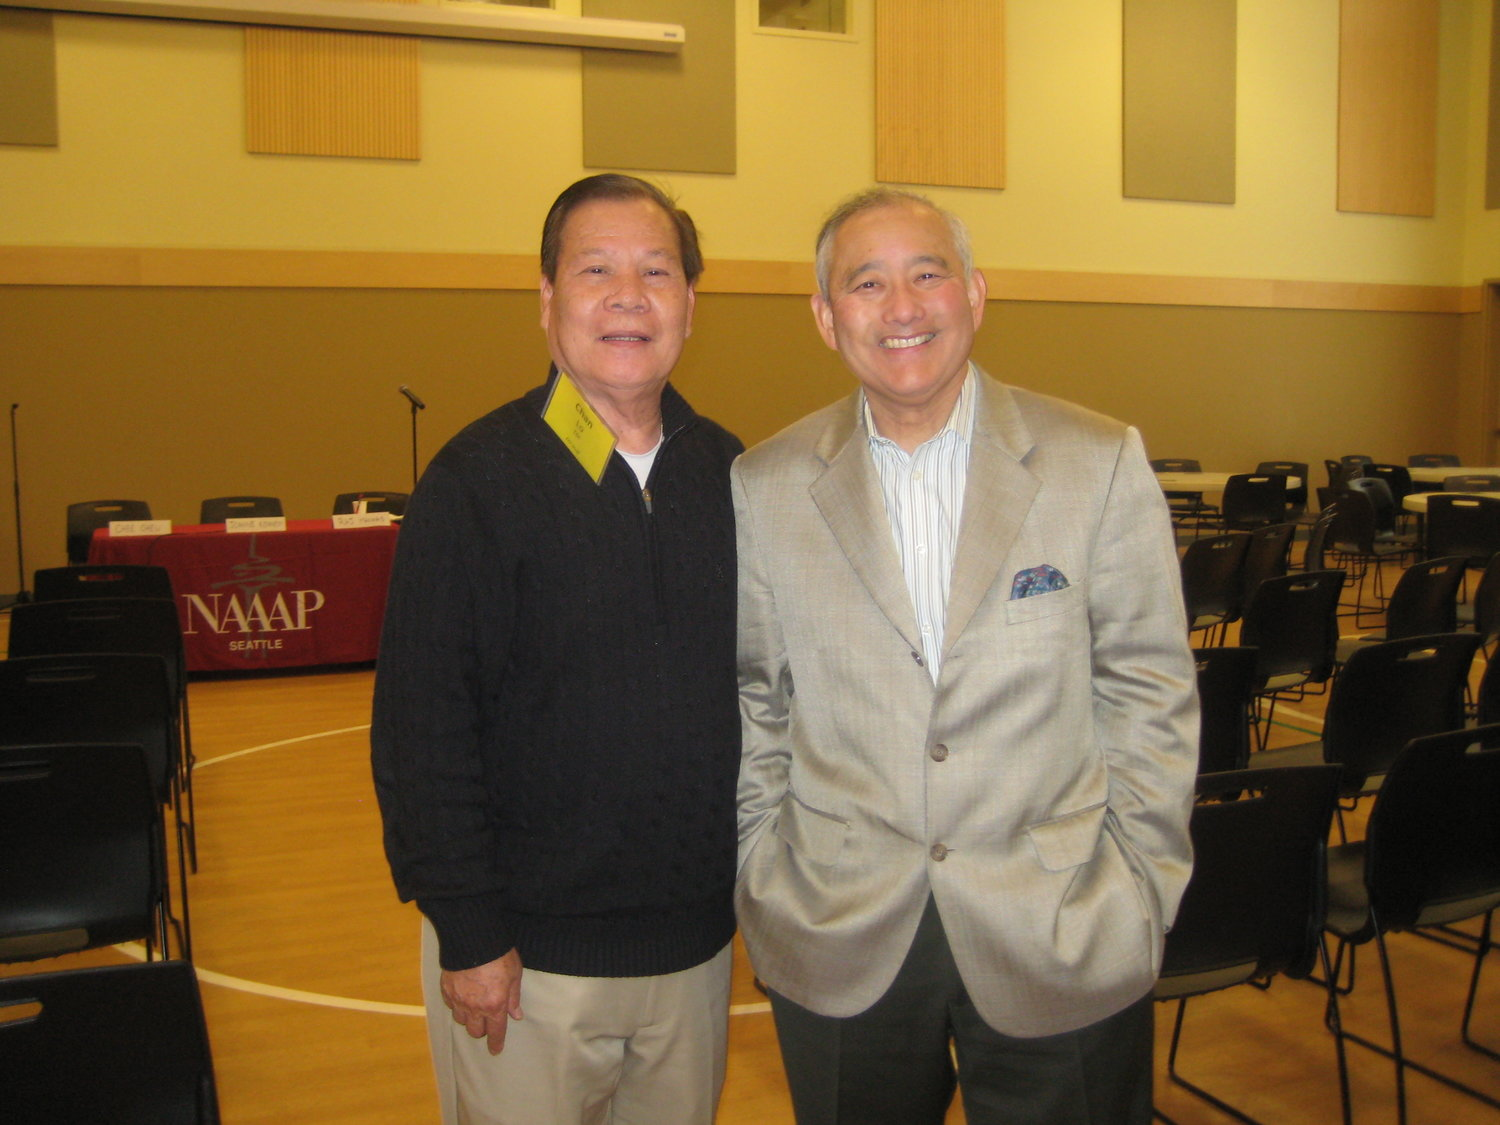 Above:  In 2013,   EDI hosted a Leadership Together Conference at ACRS, inviting other organizations like NAAAP-Seattle. The 'brothers' Chan and Al pose for a photo at the event.